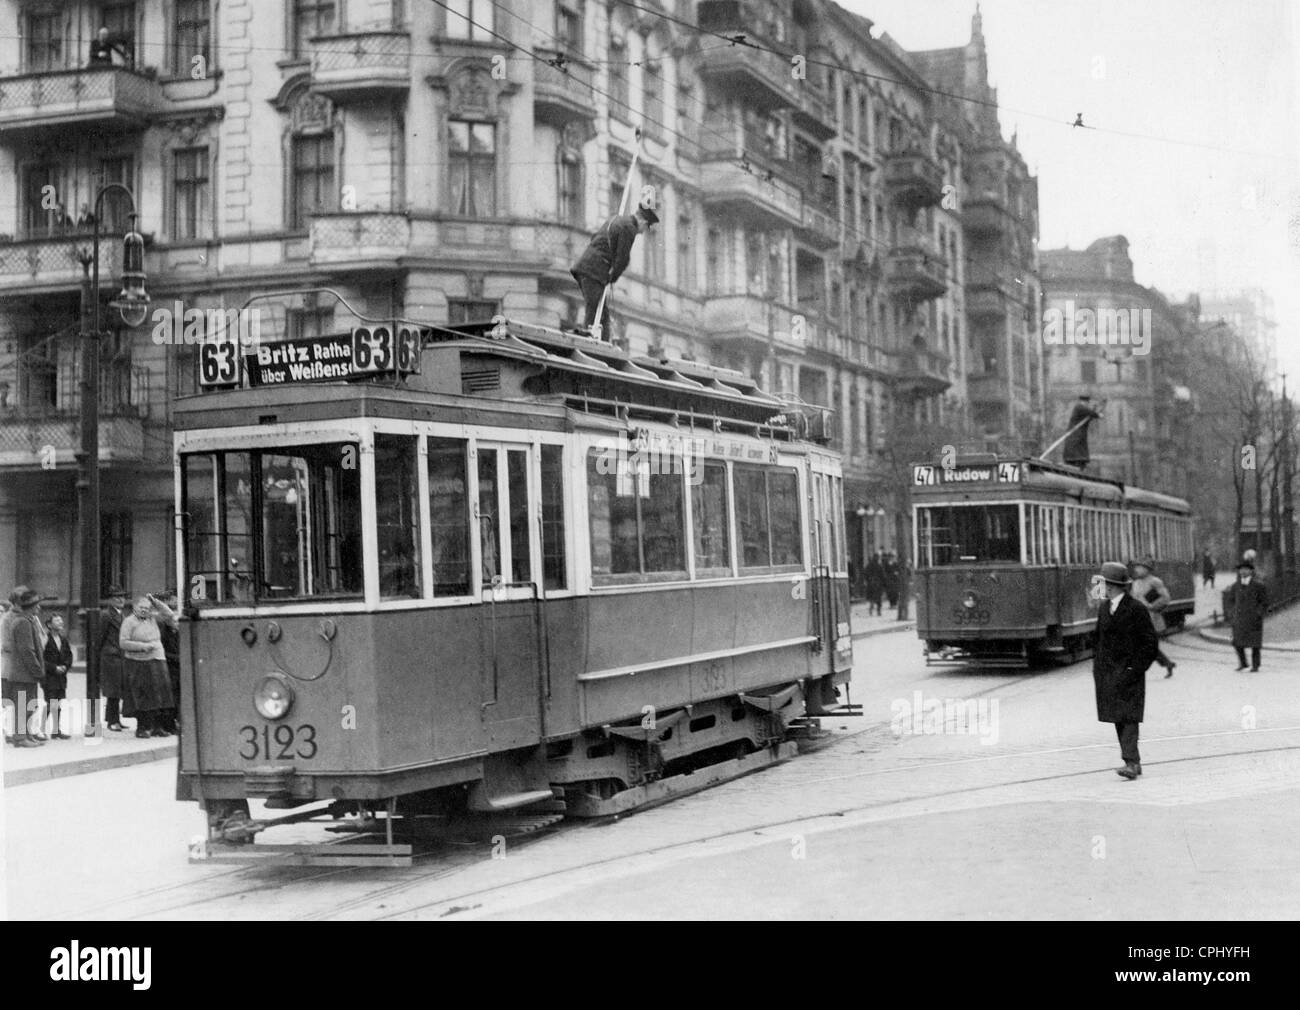 2b226b60bc9e6f Tram Wire Black and White Stock Photos   Images - Alamy